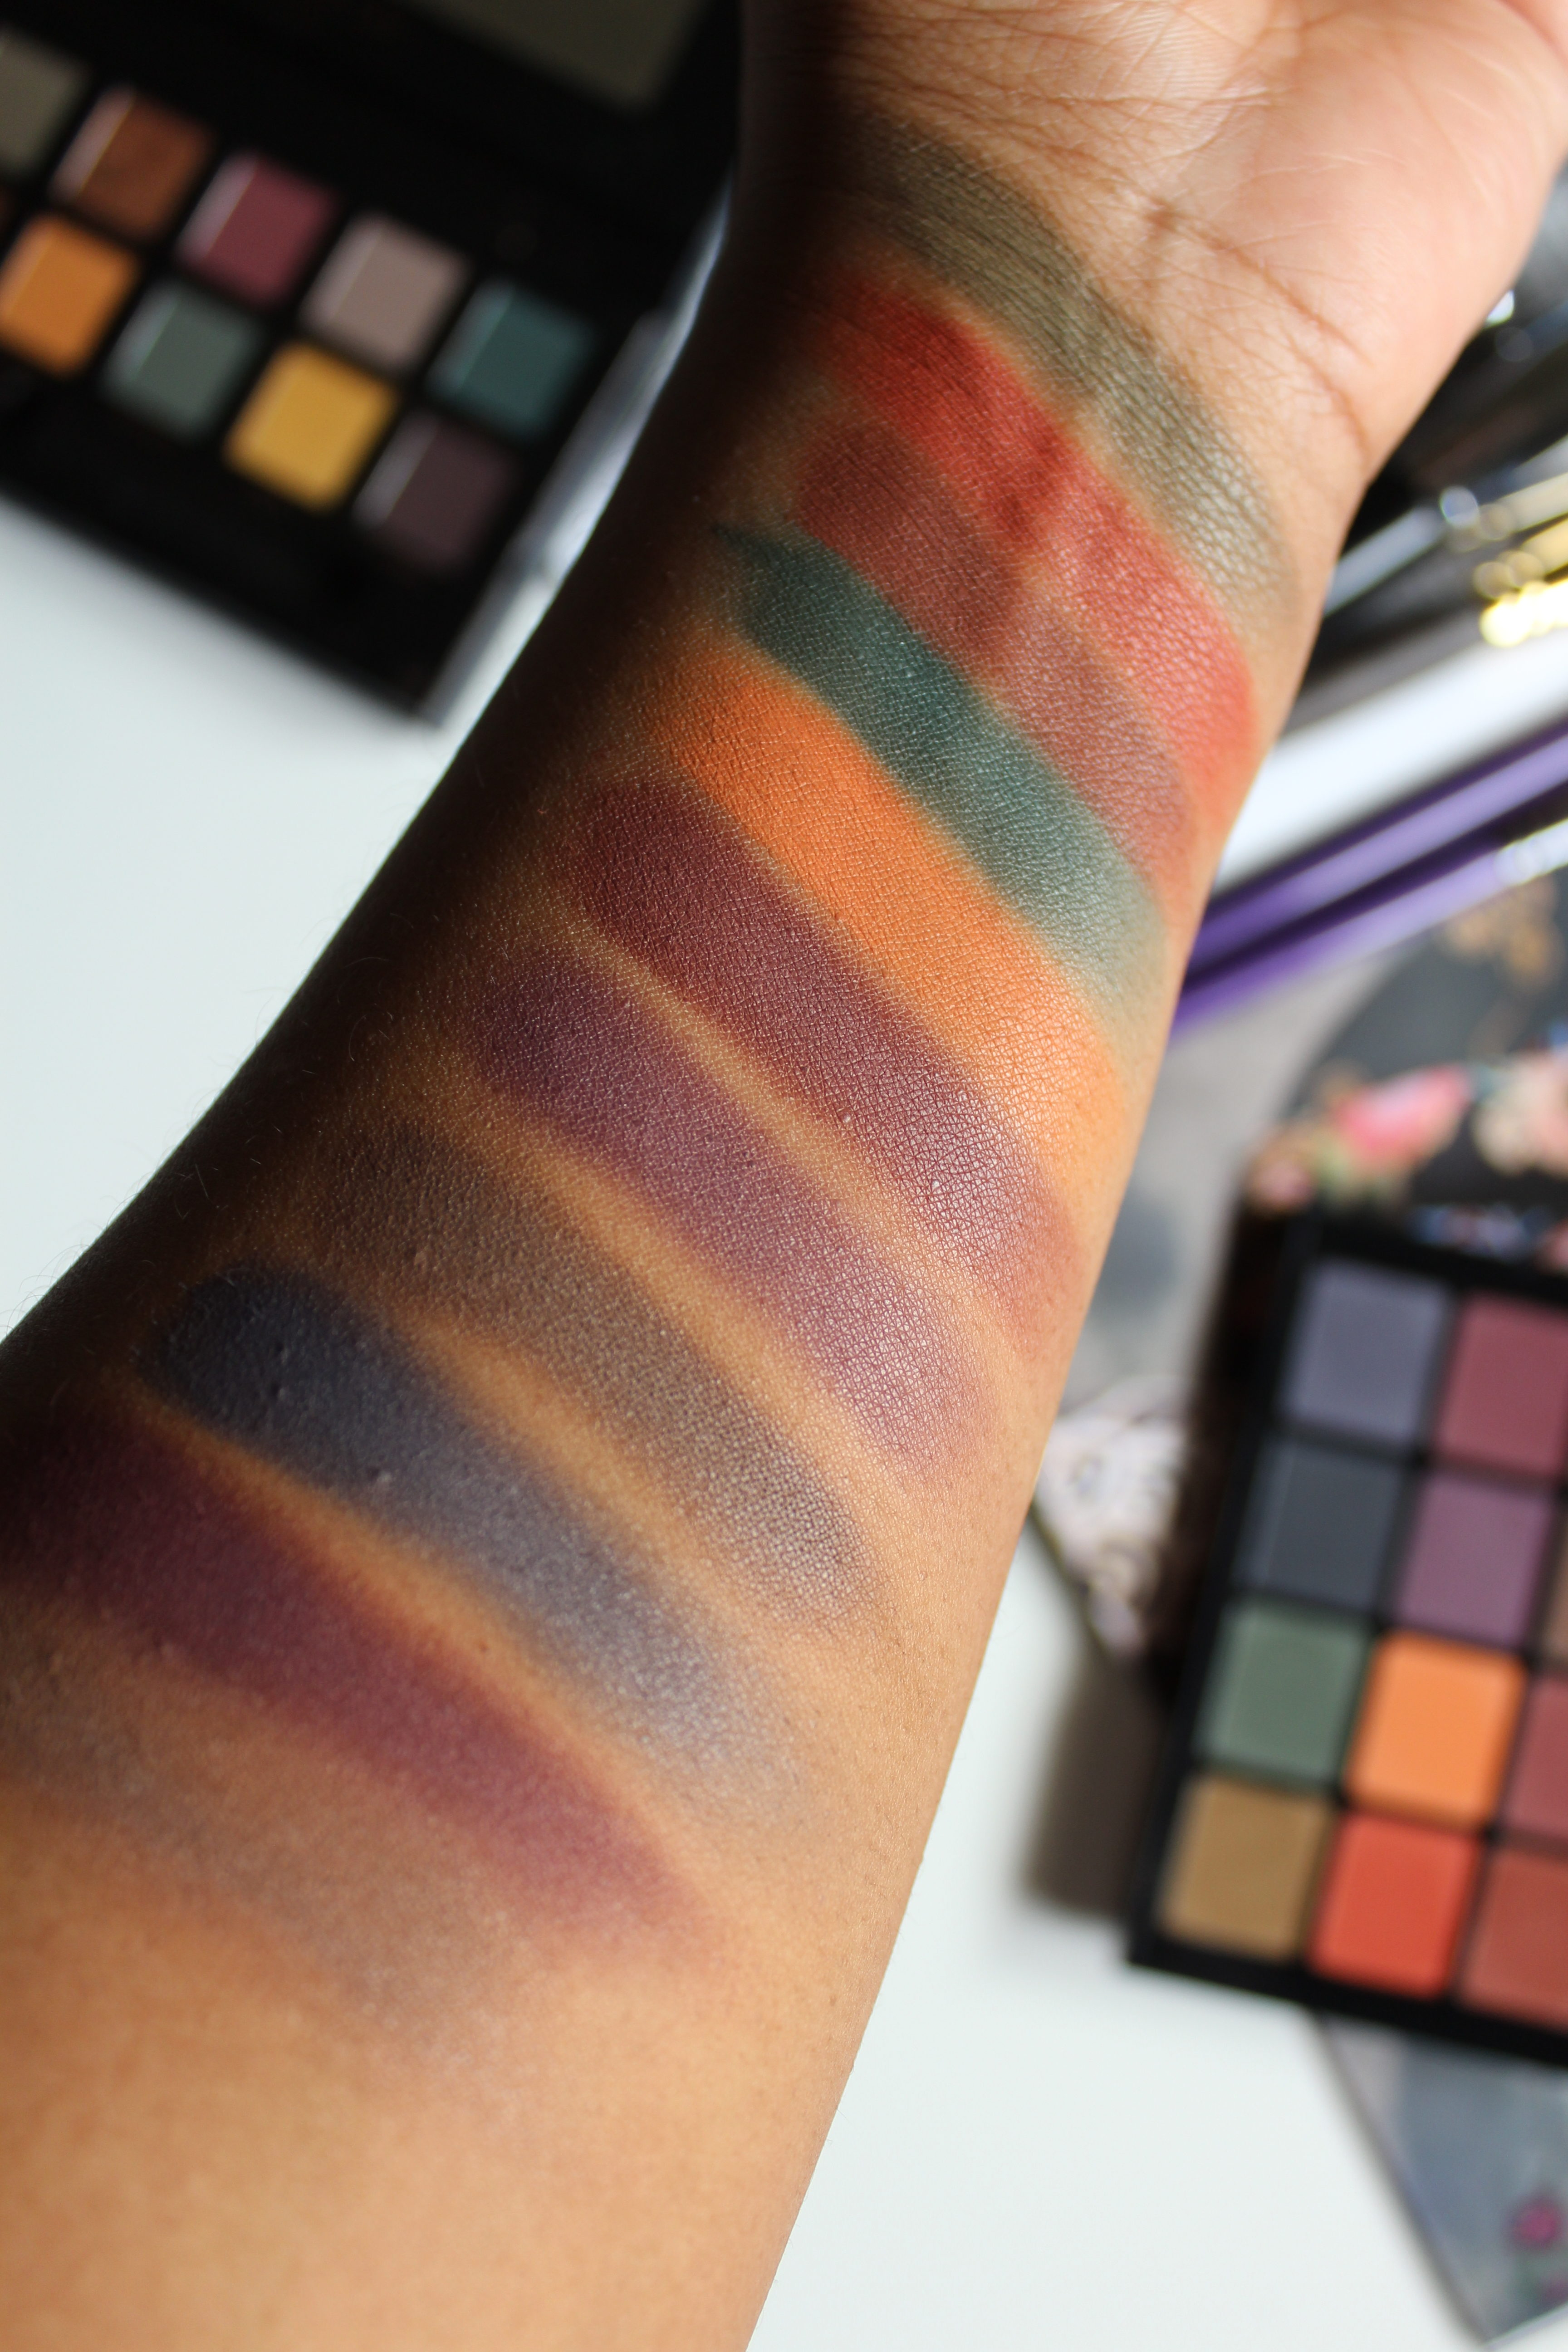 Matte Brown Eyeshadow Palette: Viseart 04 Dark Mattes Eyeshadow Palette Swatches + Quick